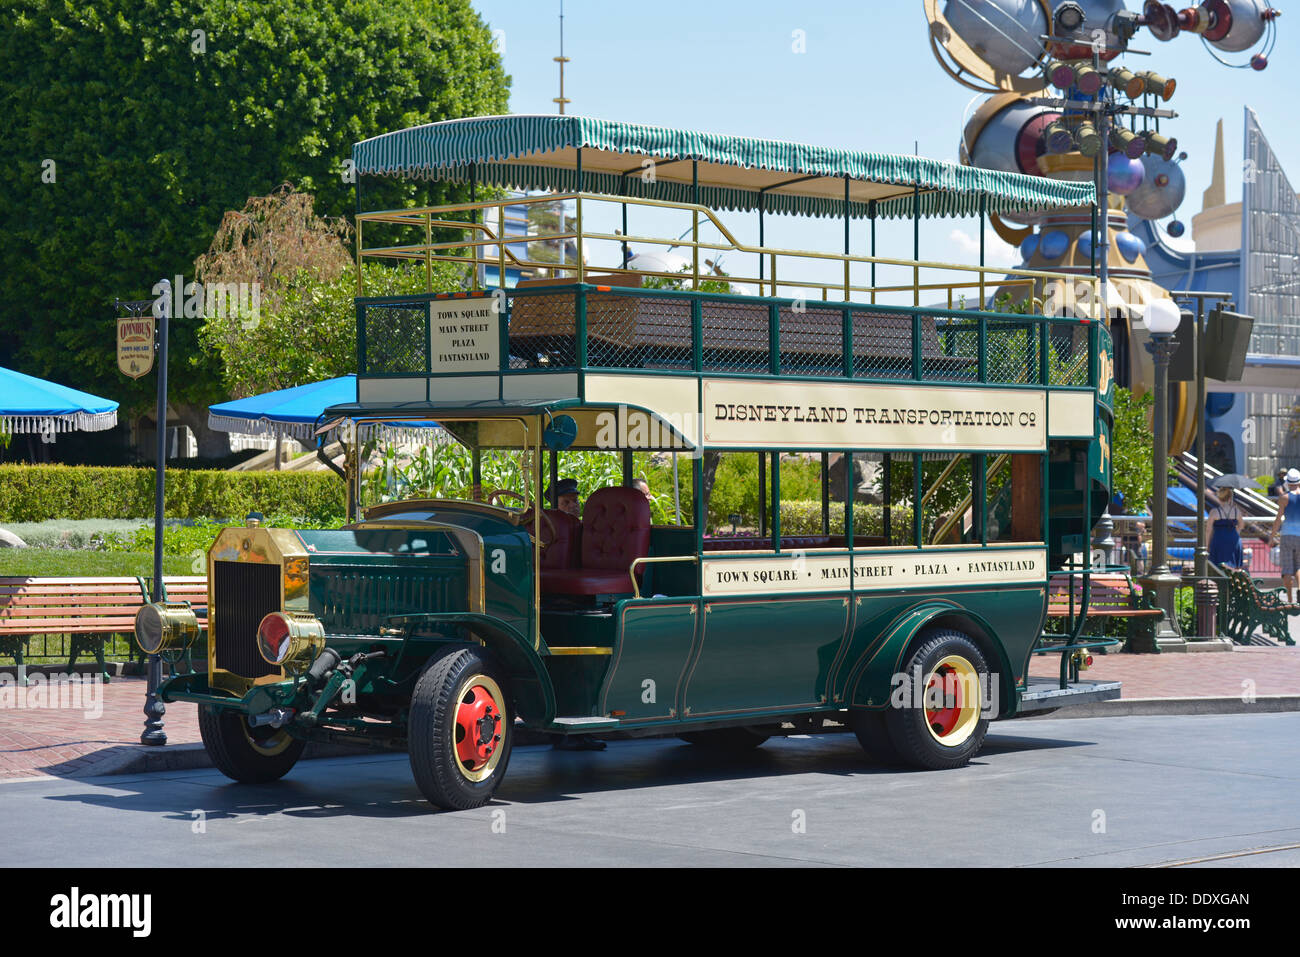 Chariot de transport, de Disneyland, Anaheim, Californie, Bus Photo Stock